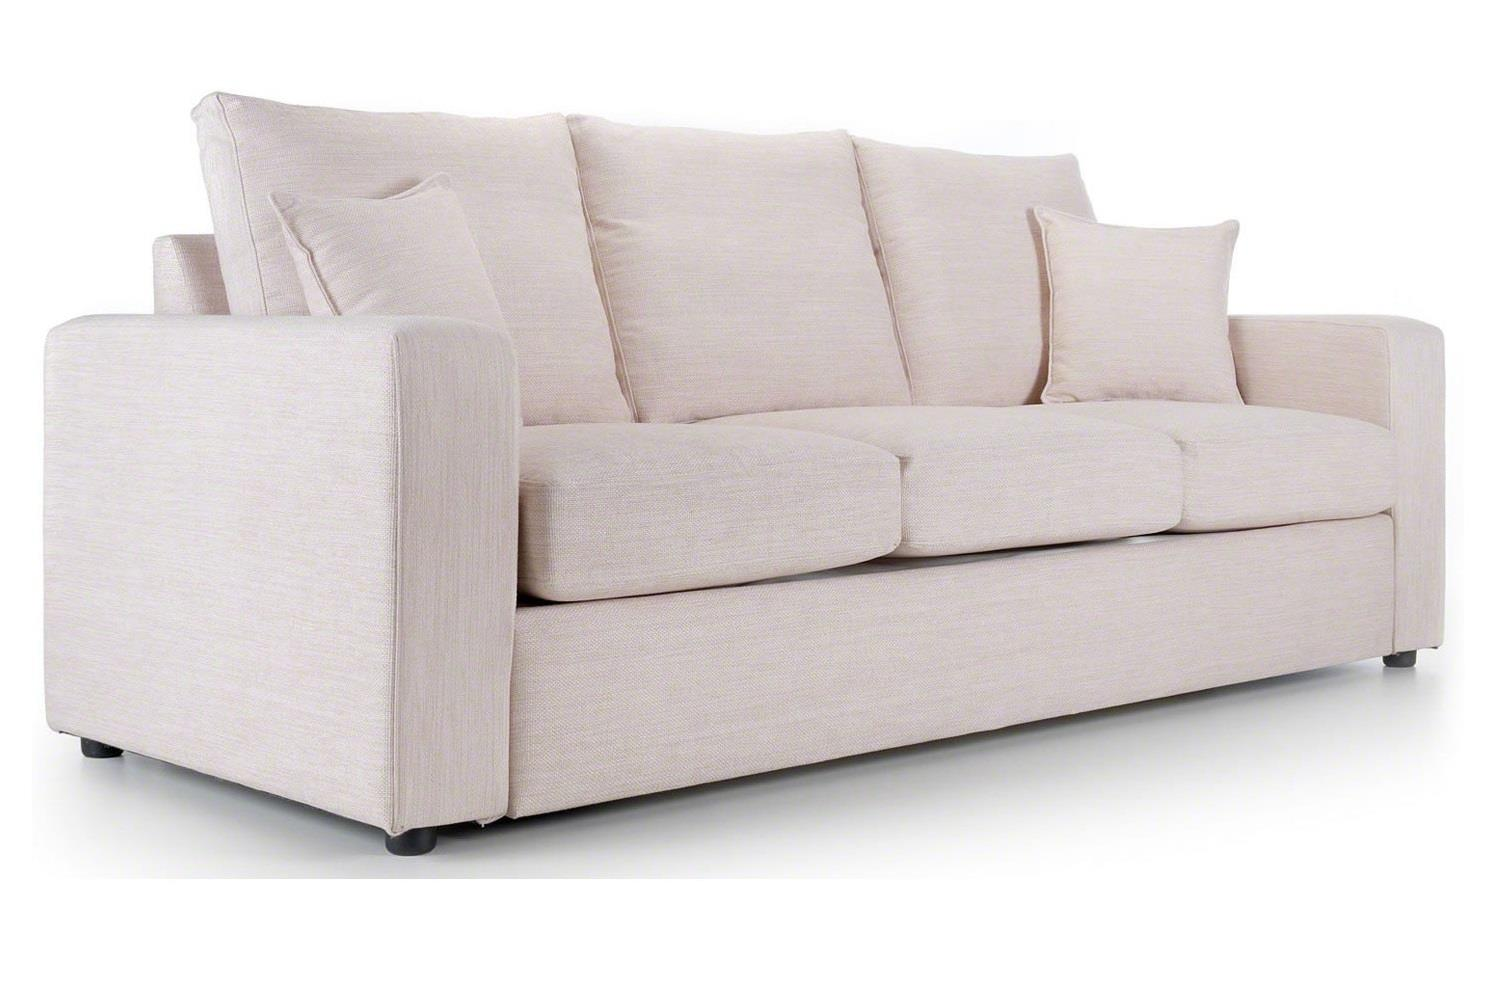 The Camberwell sofas at Just British Sofas in Taupe 2